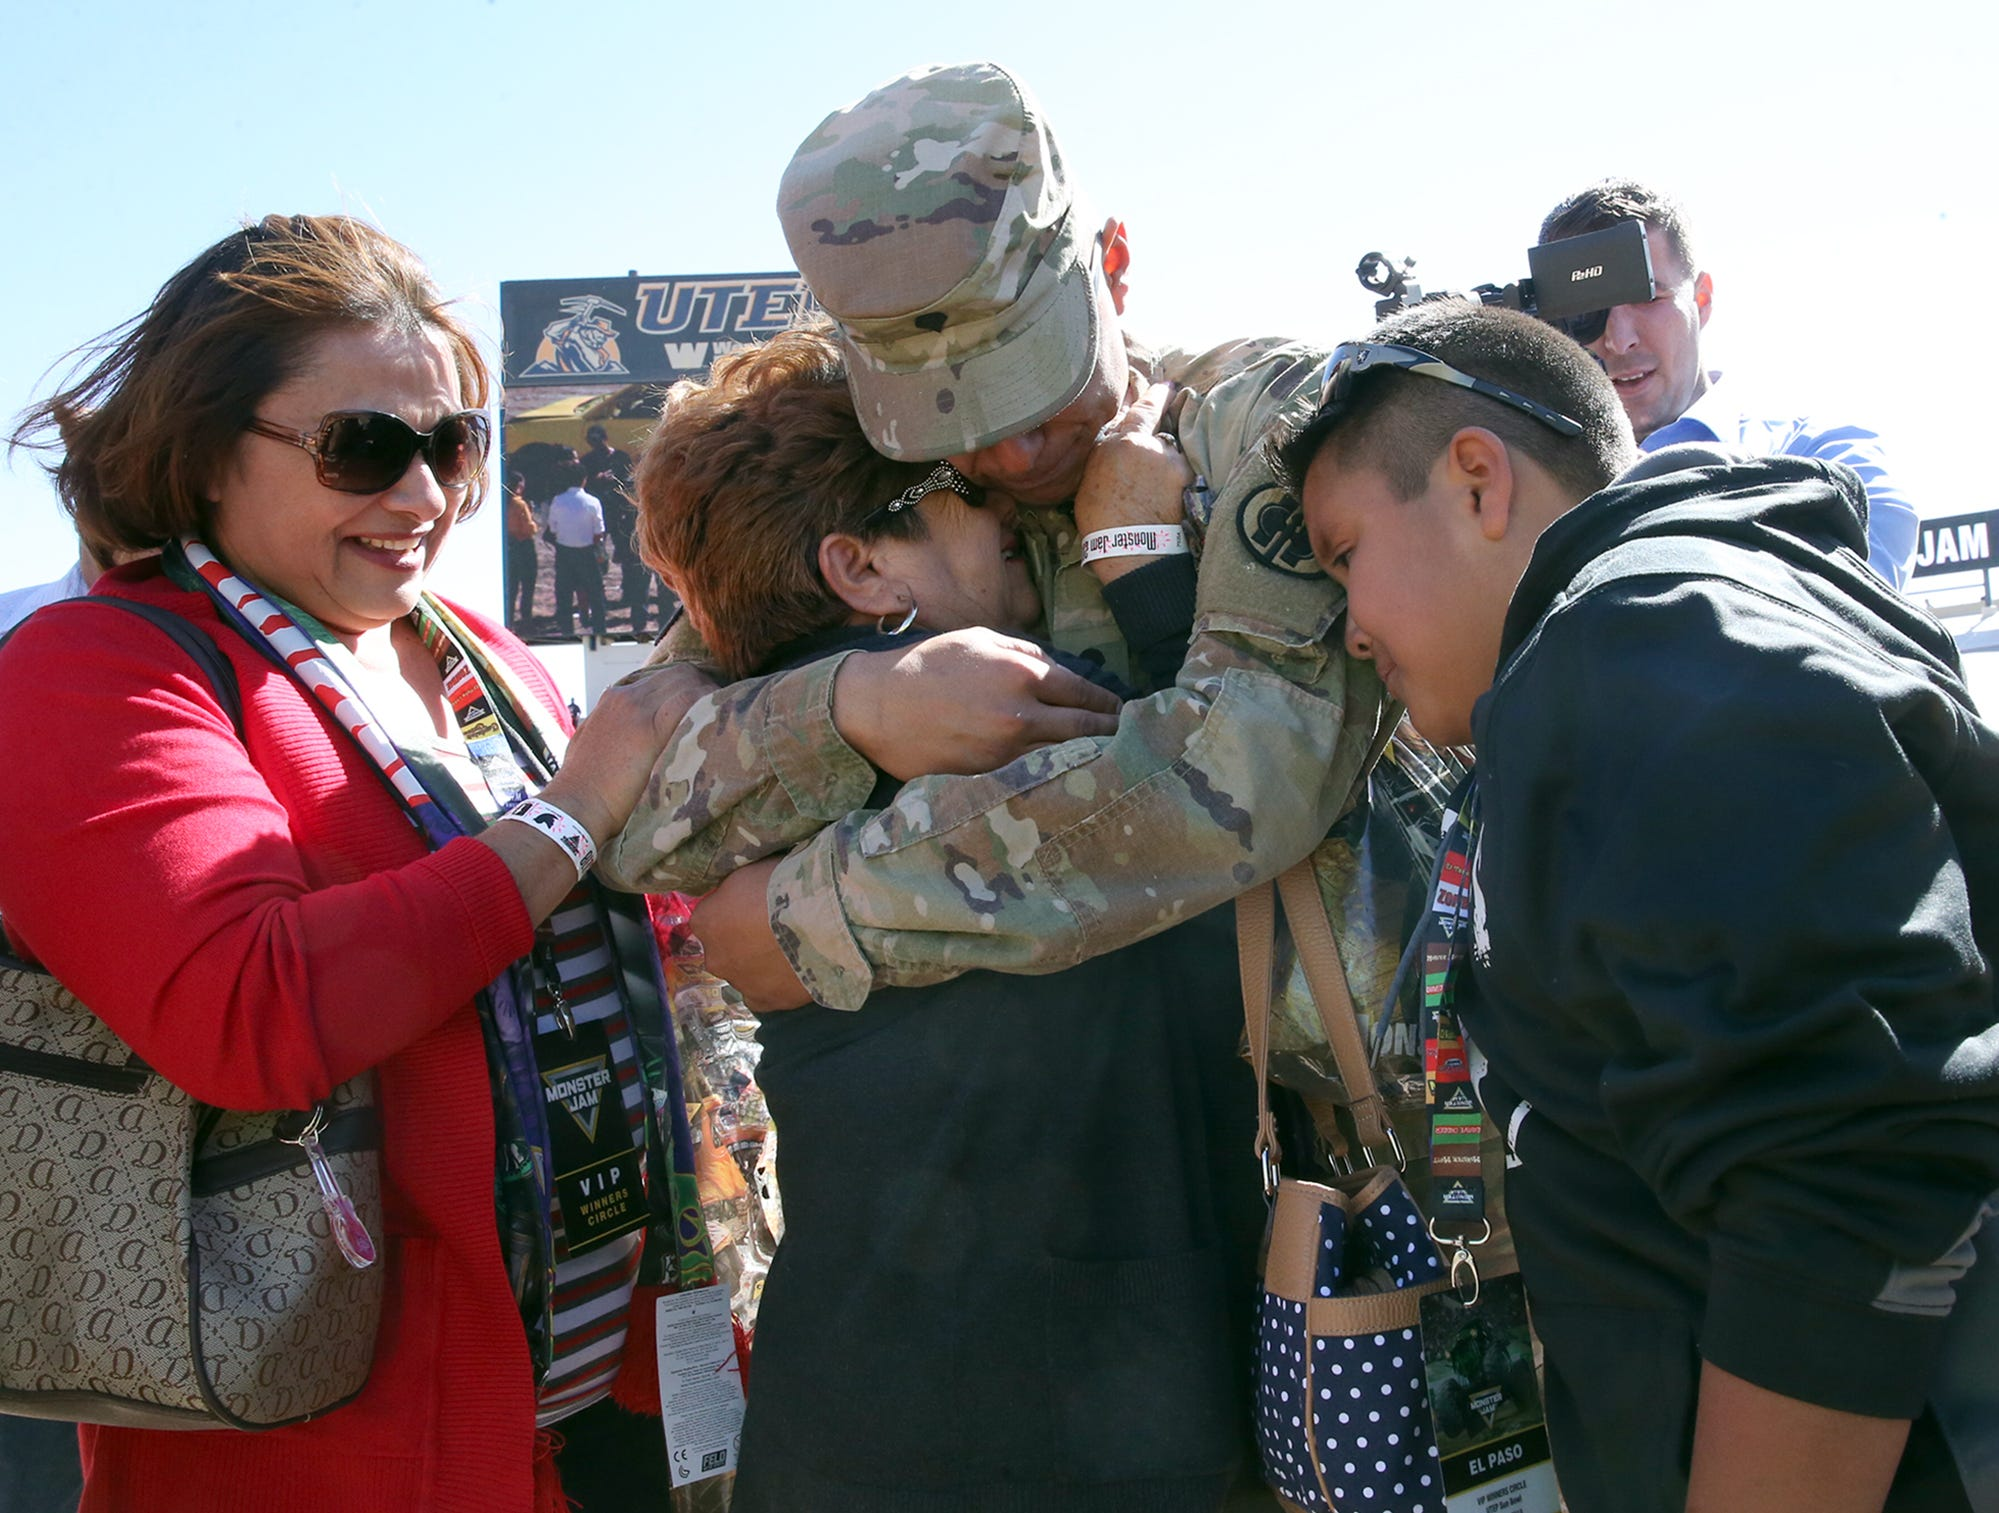 Spc. Pedro Ceijas, center, is greeted by mother, Morma Ceijas, left, aunt Vicky Beltran, center, and brother Trigo Ceijas, 11, with other relatives on the floor of the Sun Bowl Stadium at the start of Monster Jam event Sunday. Ceijas, 20, of the 83rd Military Police Company of the Army Reserve surprised his family after being away on deployment to Kuwait and Iraq the past nine months. As Monster Jam fans, Ceijas knew the family would be there and ran out to greet them after they were introduced as VIP fans of the event. Following the reunion, the family were escorted to the stands to watch the show.